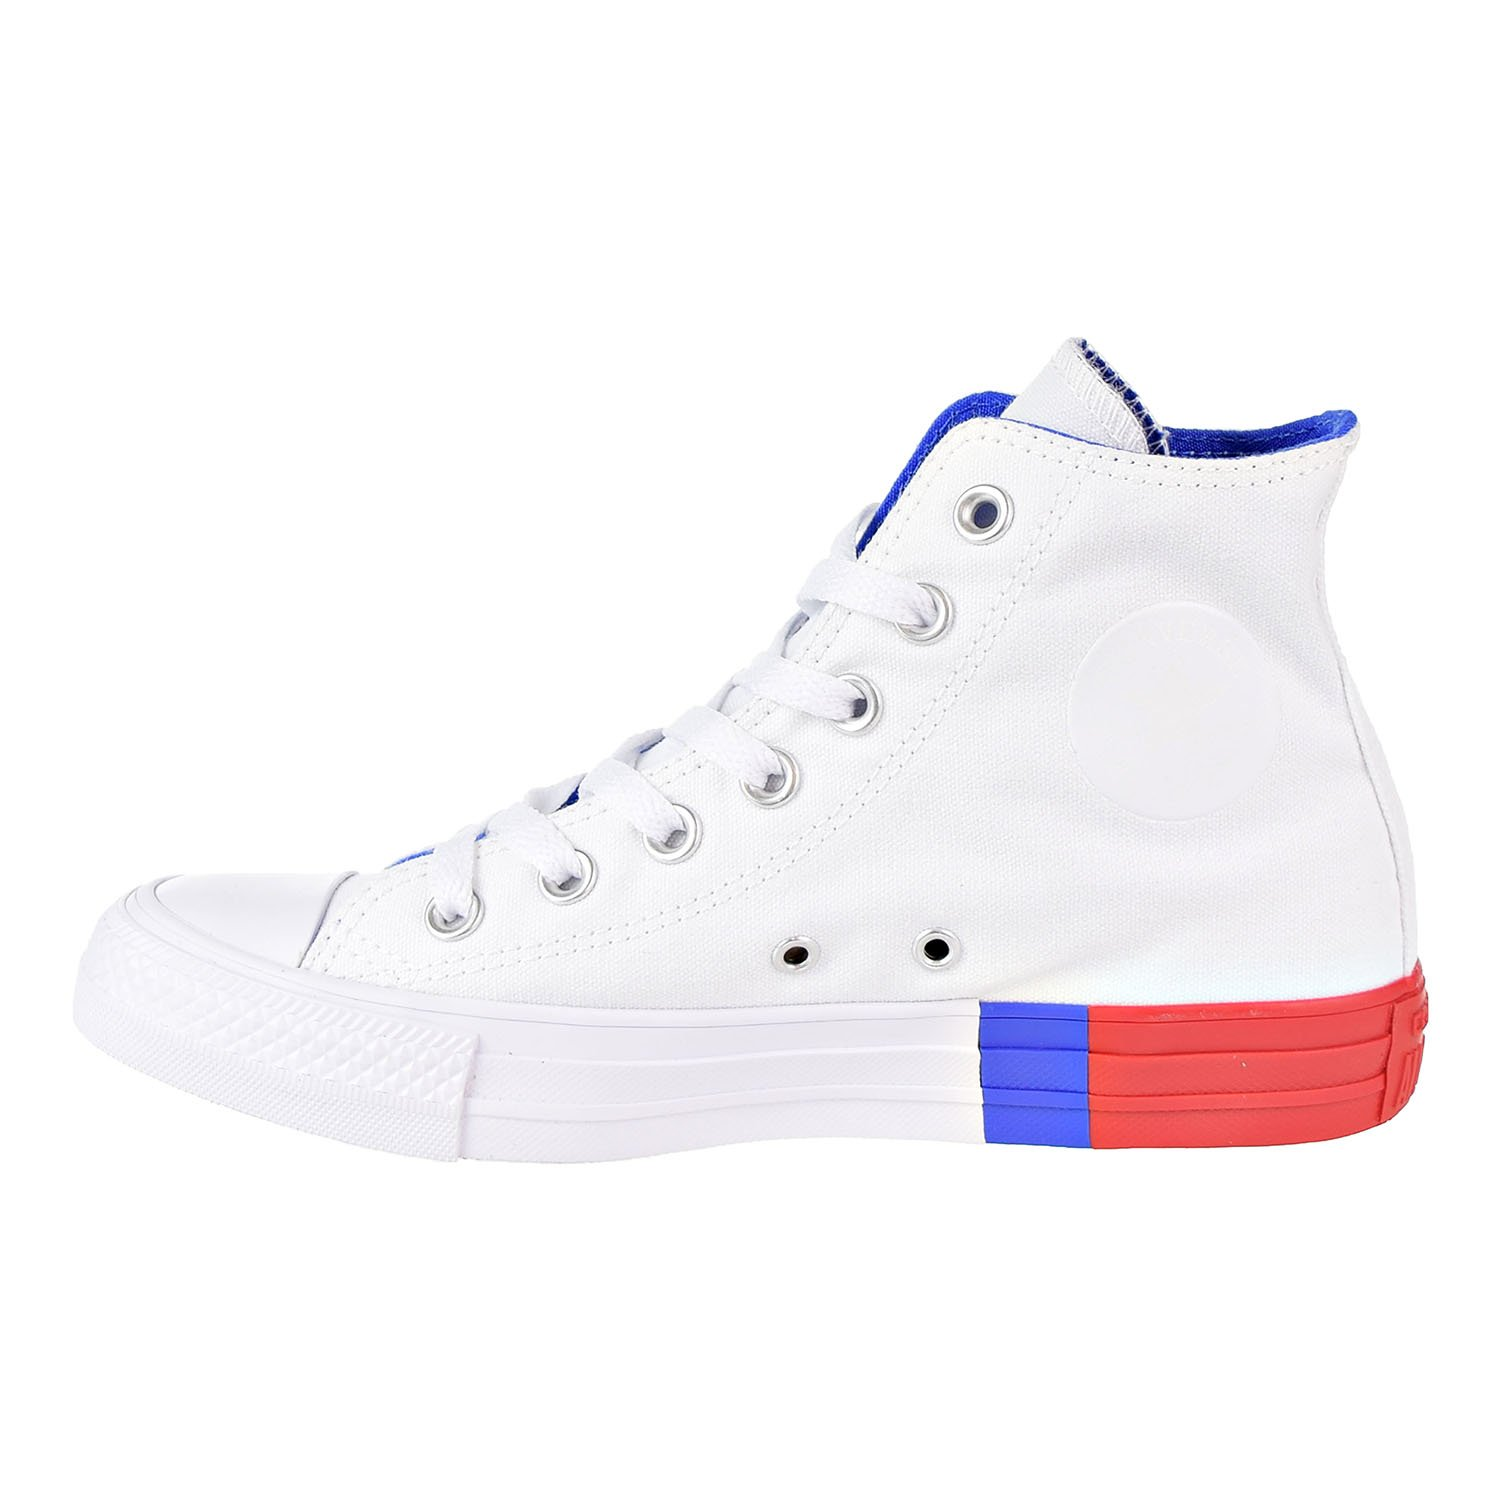 White//RED//Blue Converse Unisex Chuck Taylor All Star